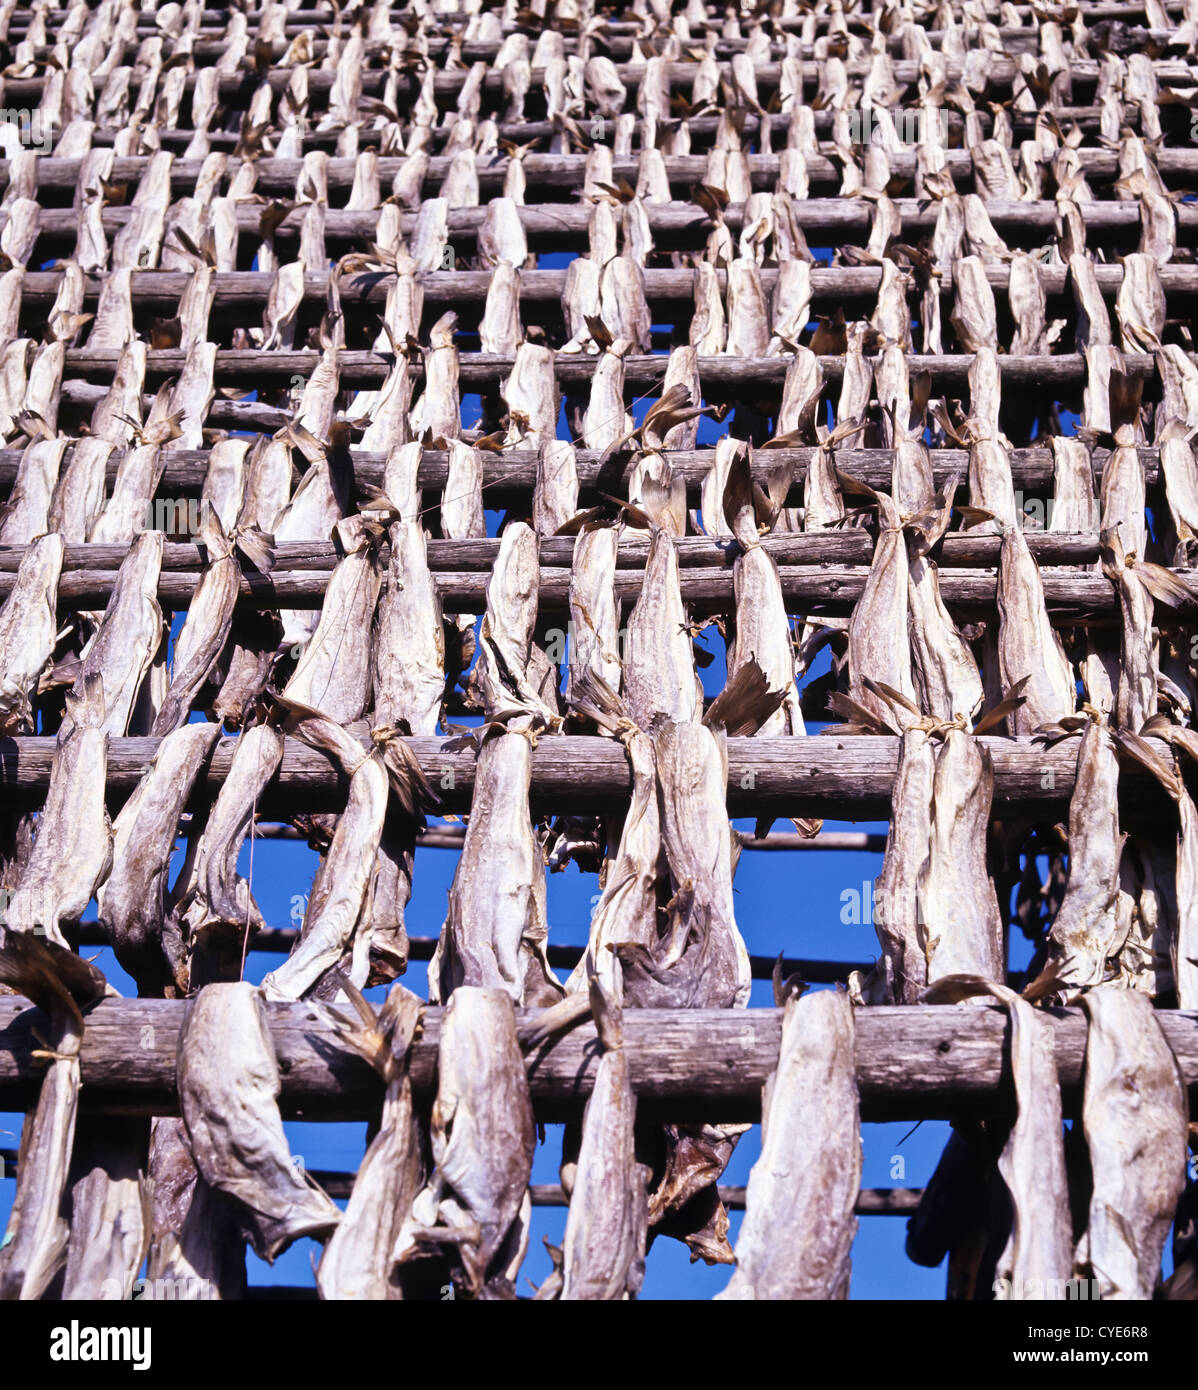 8316. Cole fish drying, Northern Norway, Europe - Stock Image